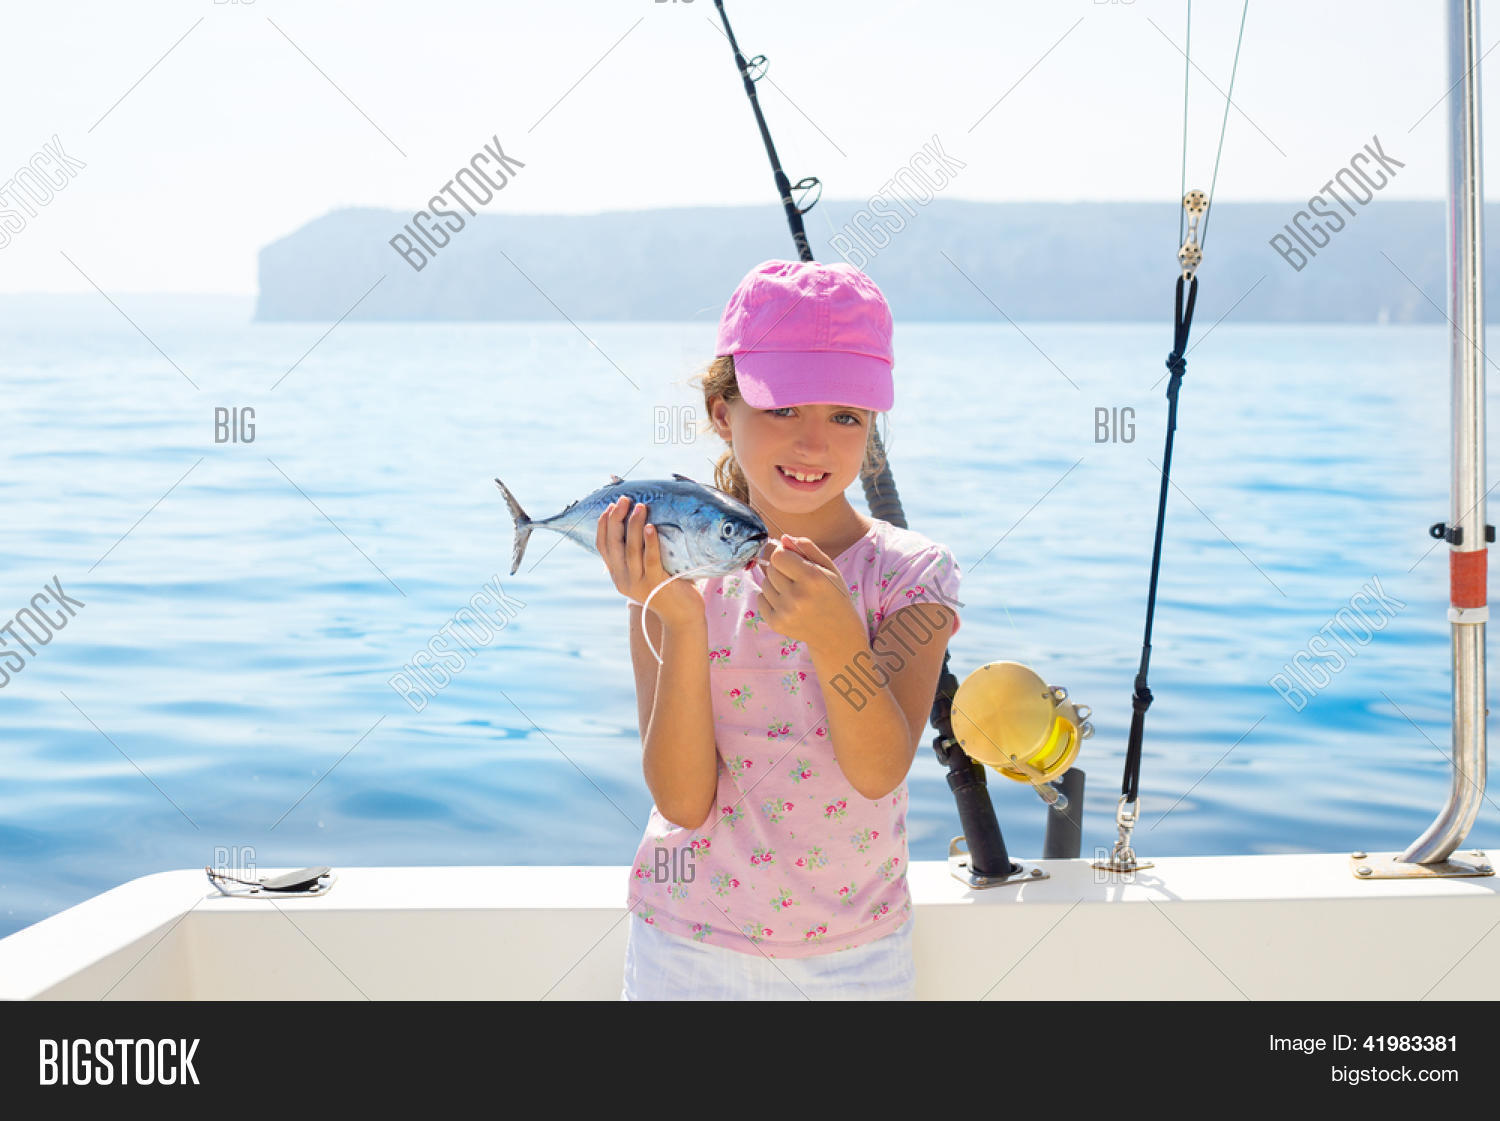 Child little girl fishing boat image photo bigstock for Little girl fishing pole